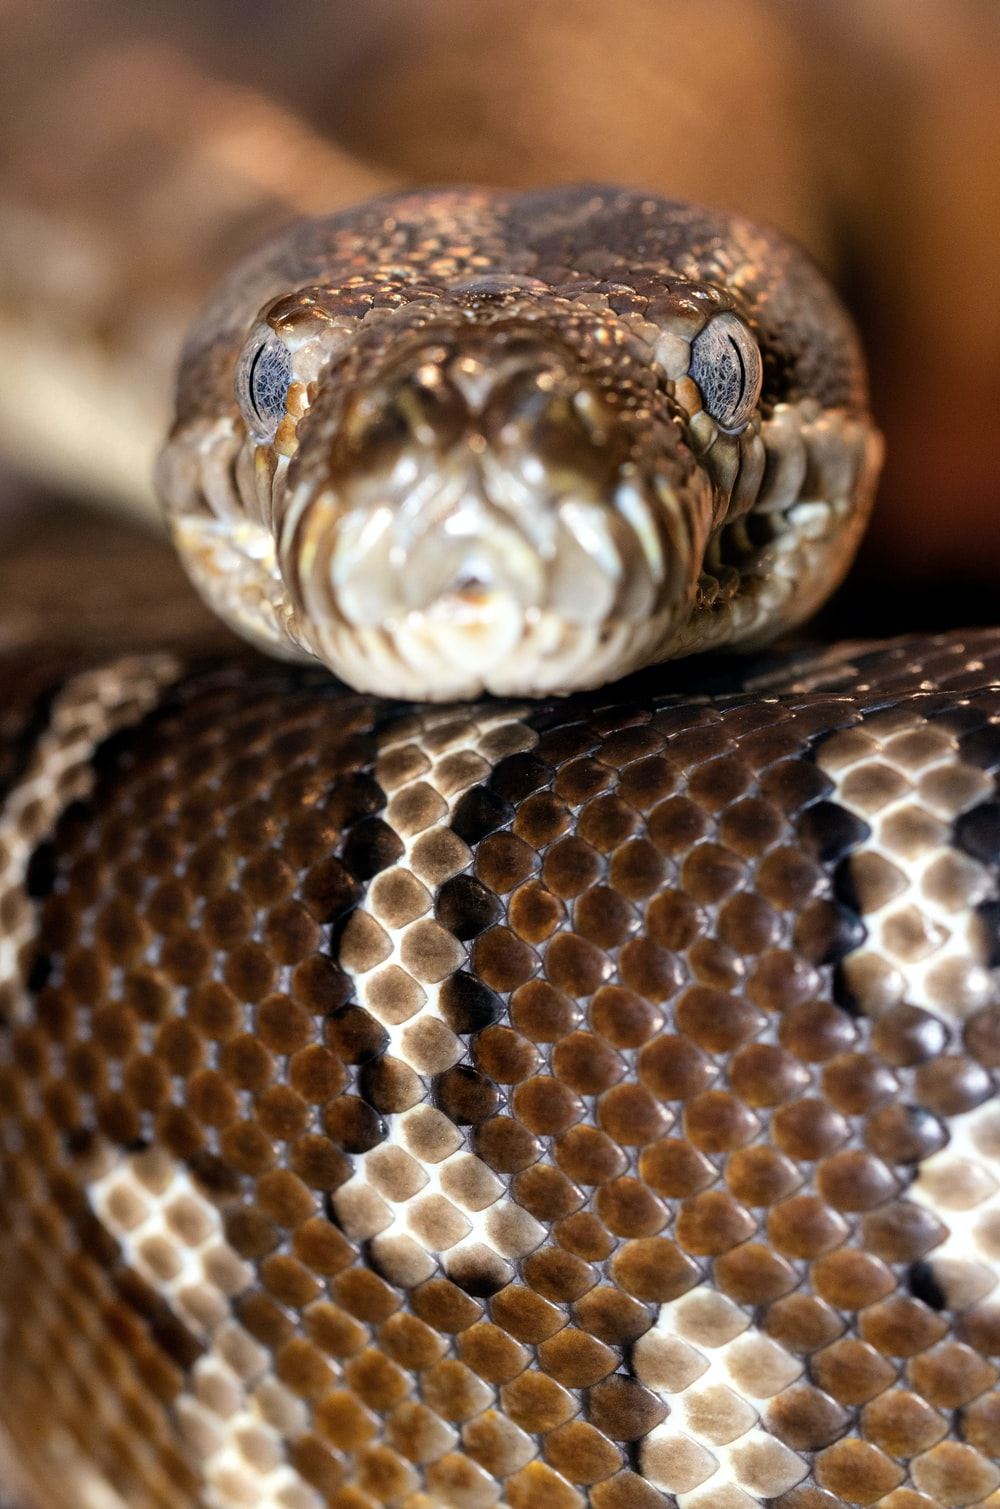 brown and white snake in close up photography